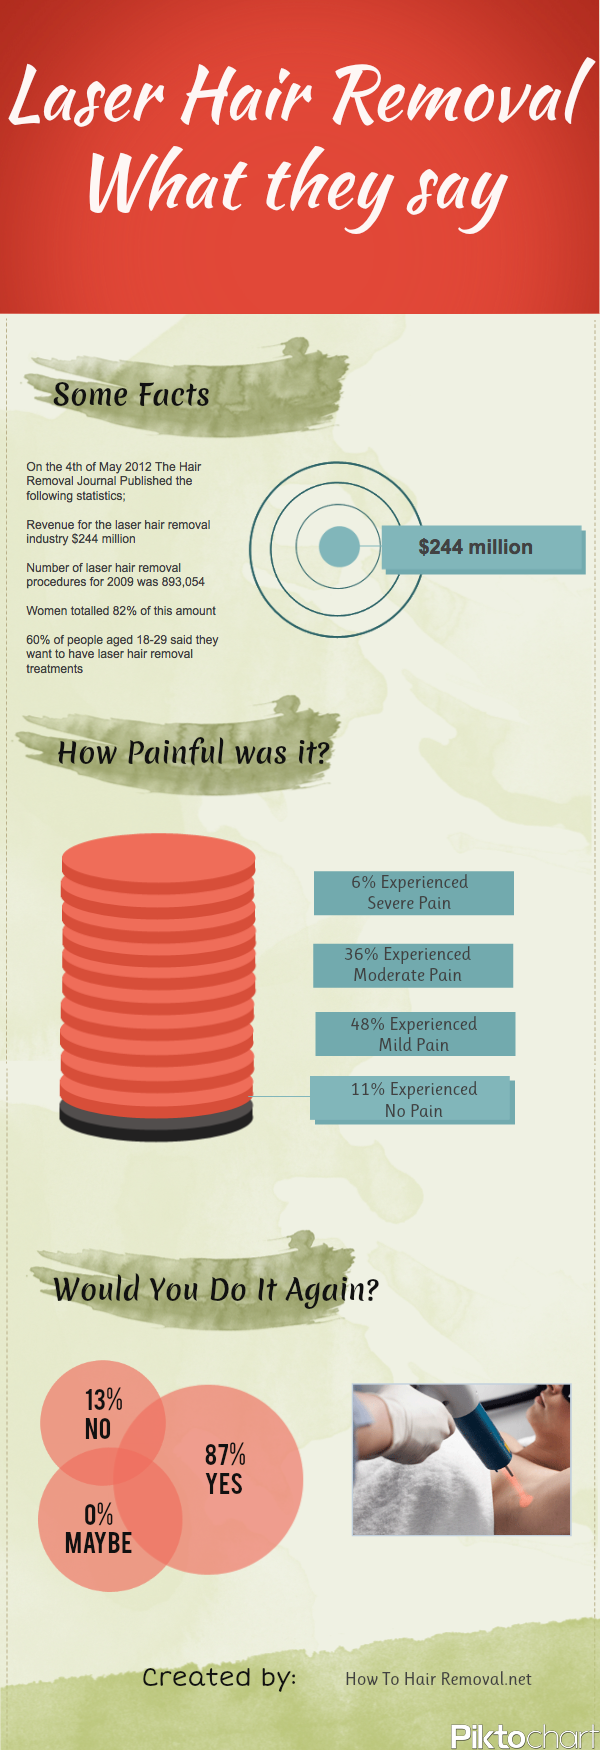 """Laser Hair Removal: What They say [INFOGRAPHIC] 